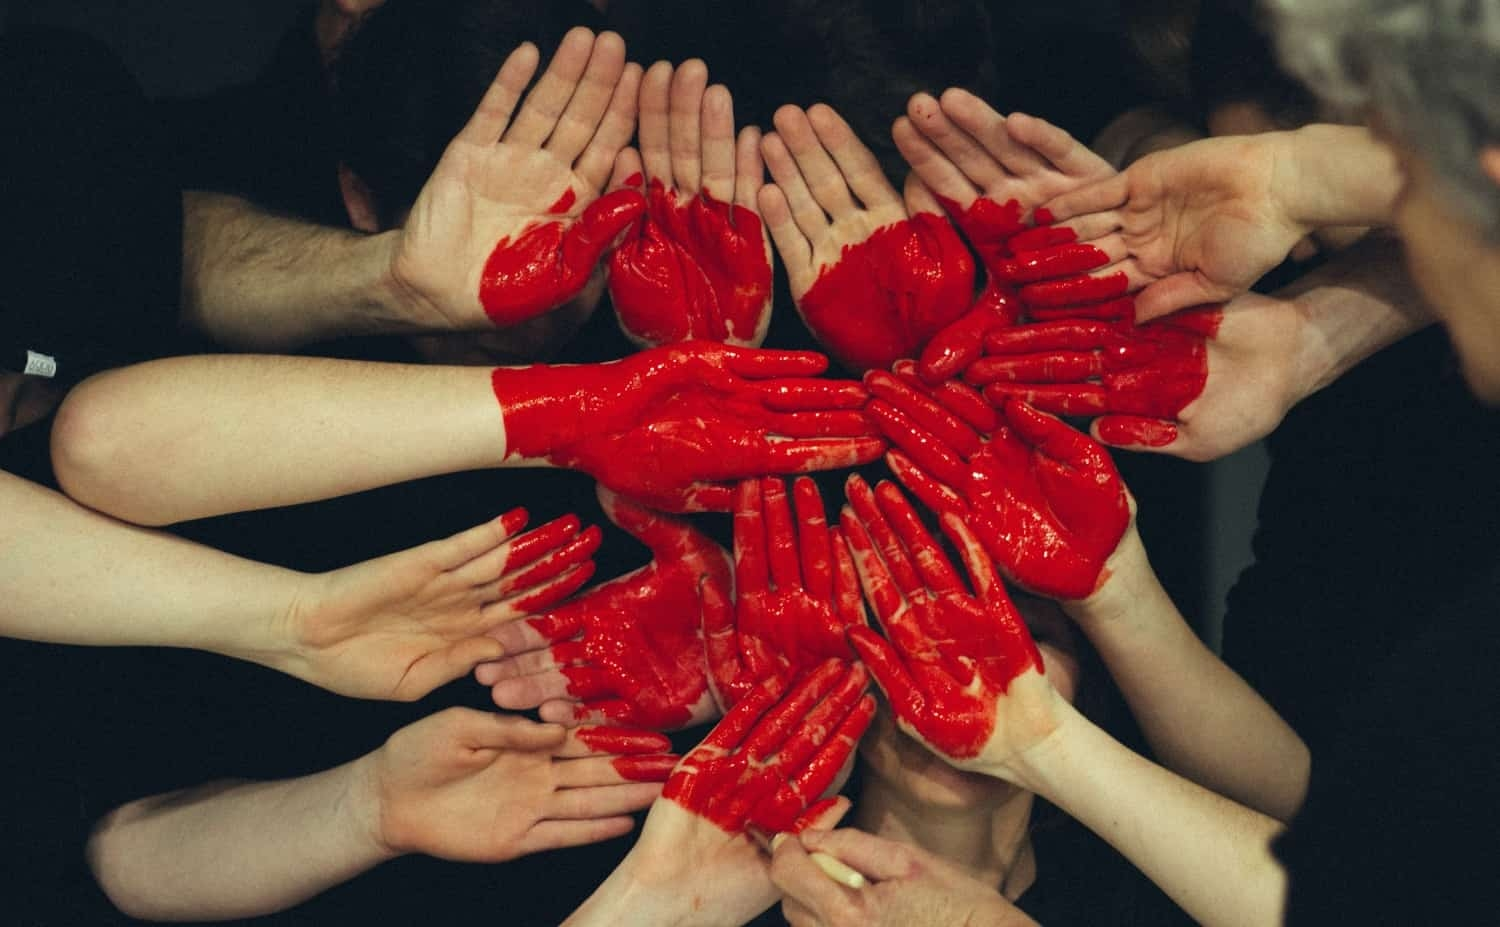 Hands together painted as a red heart to represent togetherness.